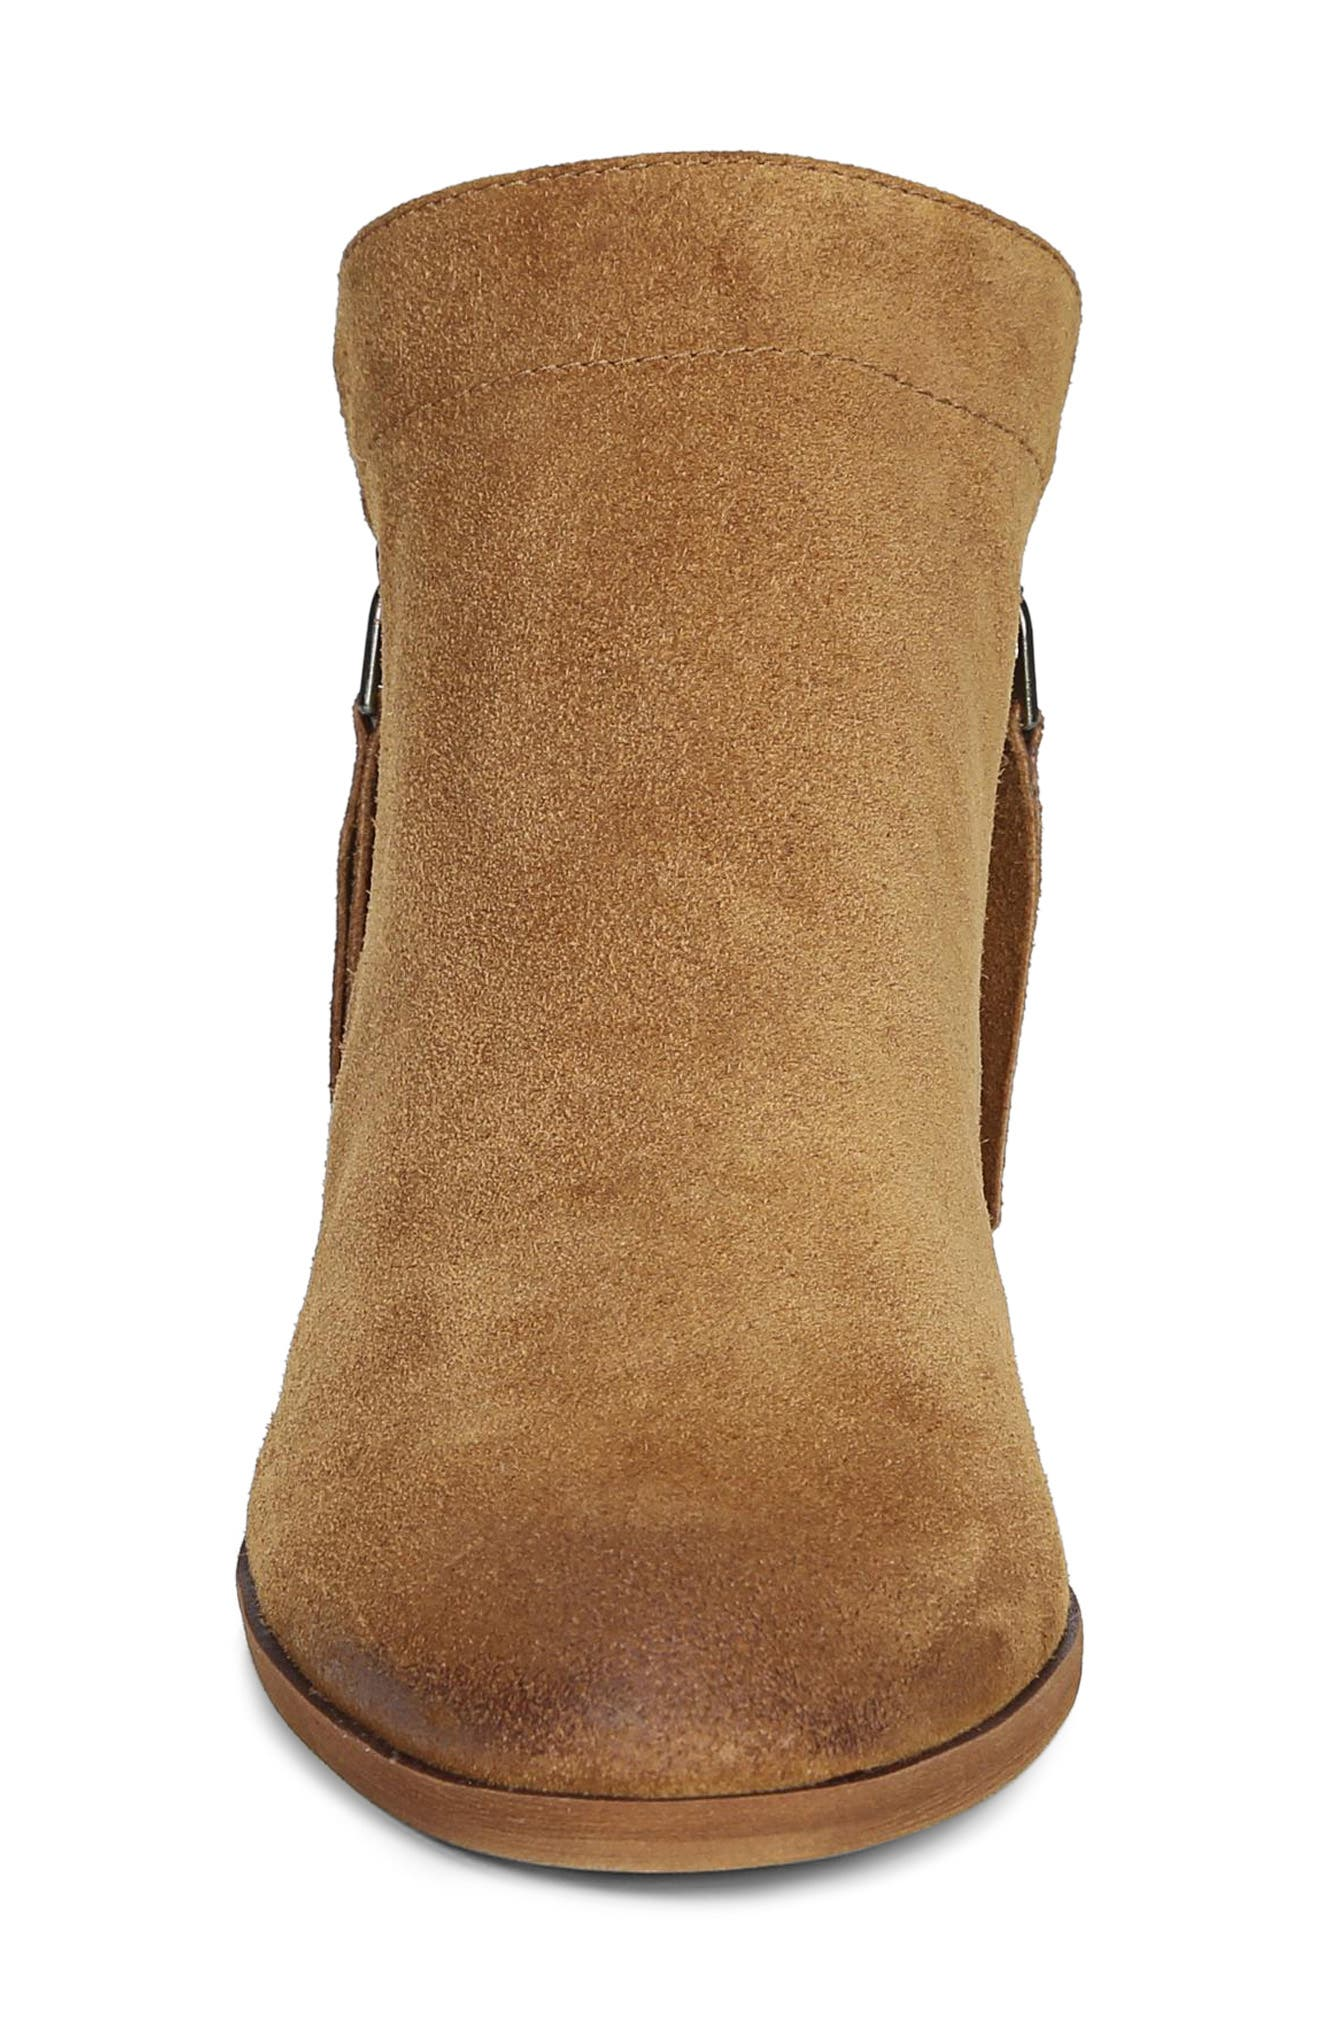 Packer Bootie,                             Alternate thumbnail 4, color,                             LUGGAGE SUEDE LEATHER